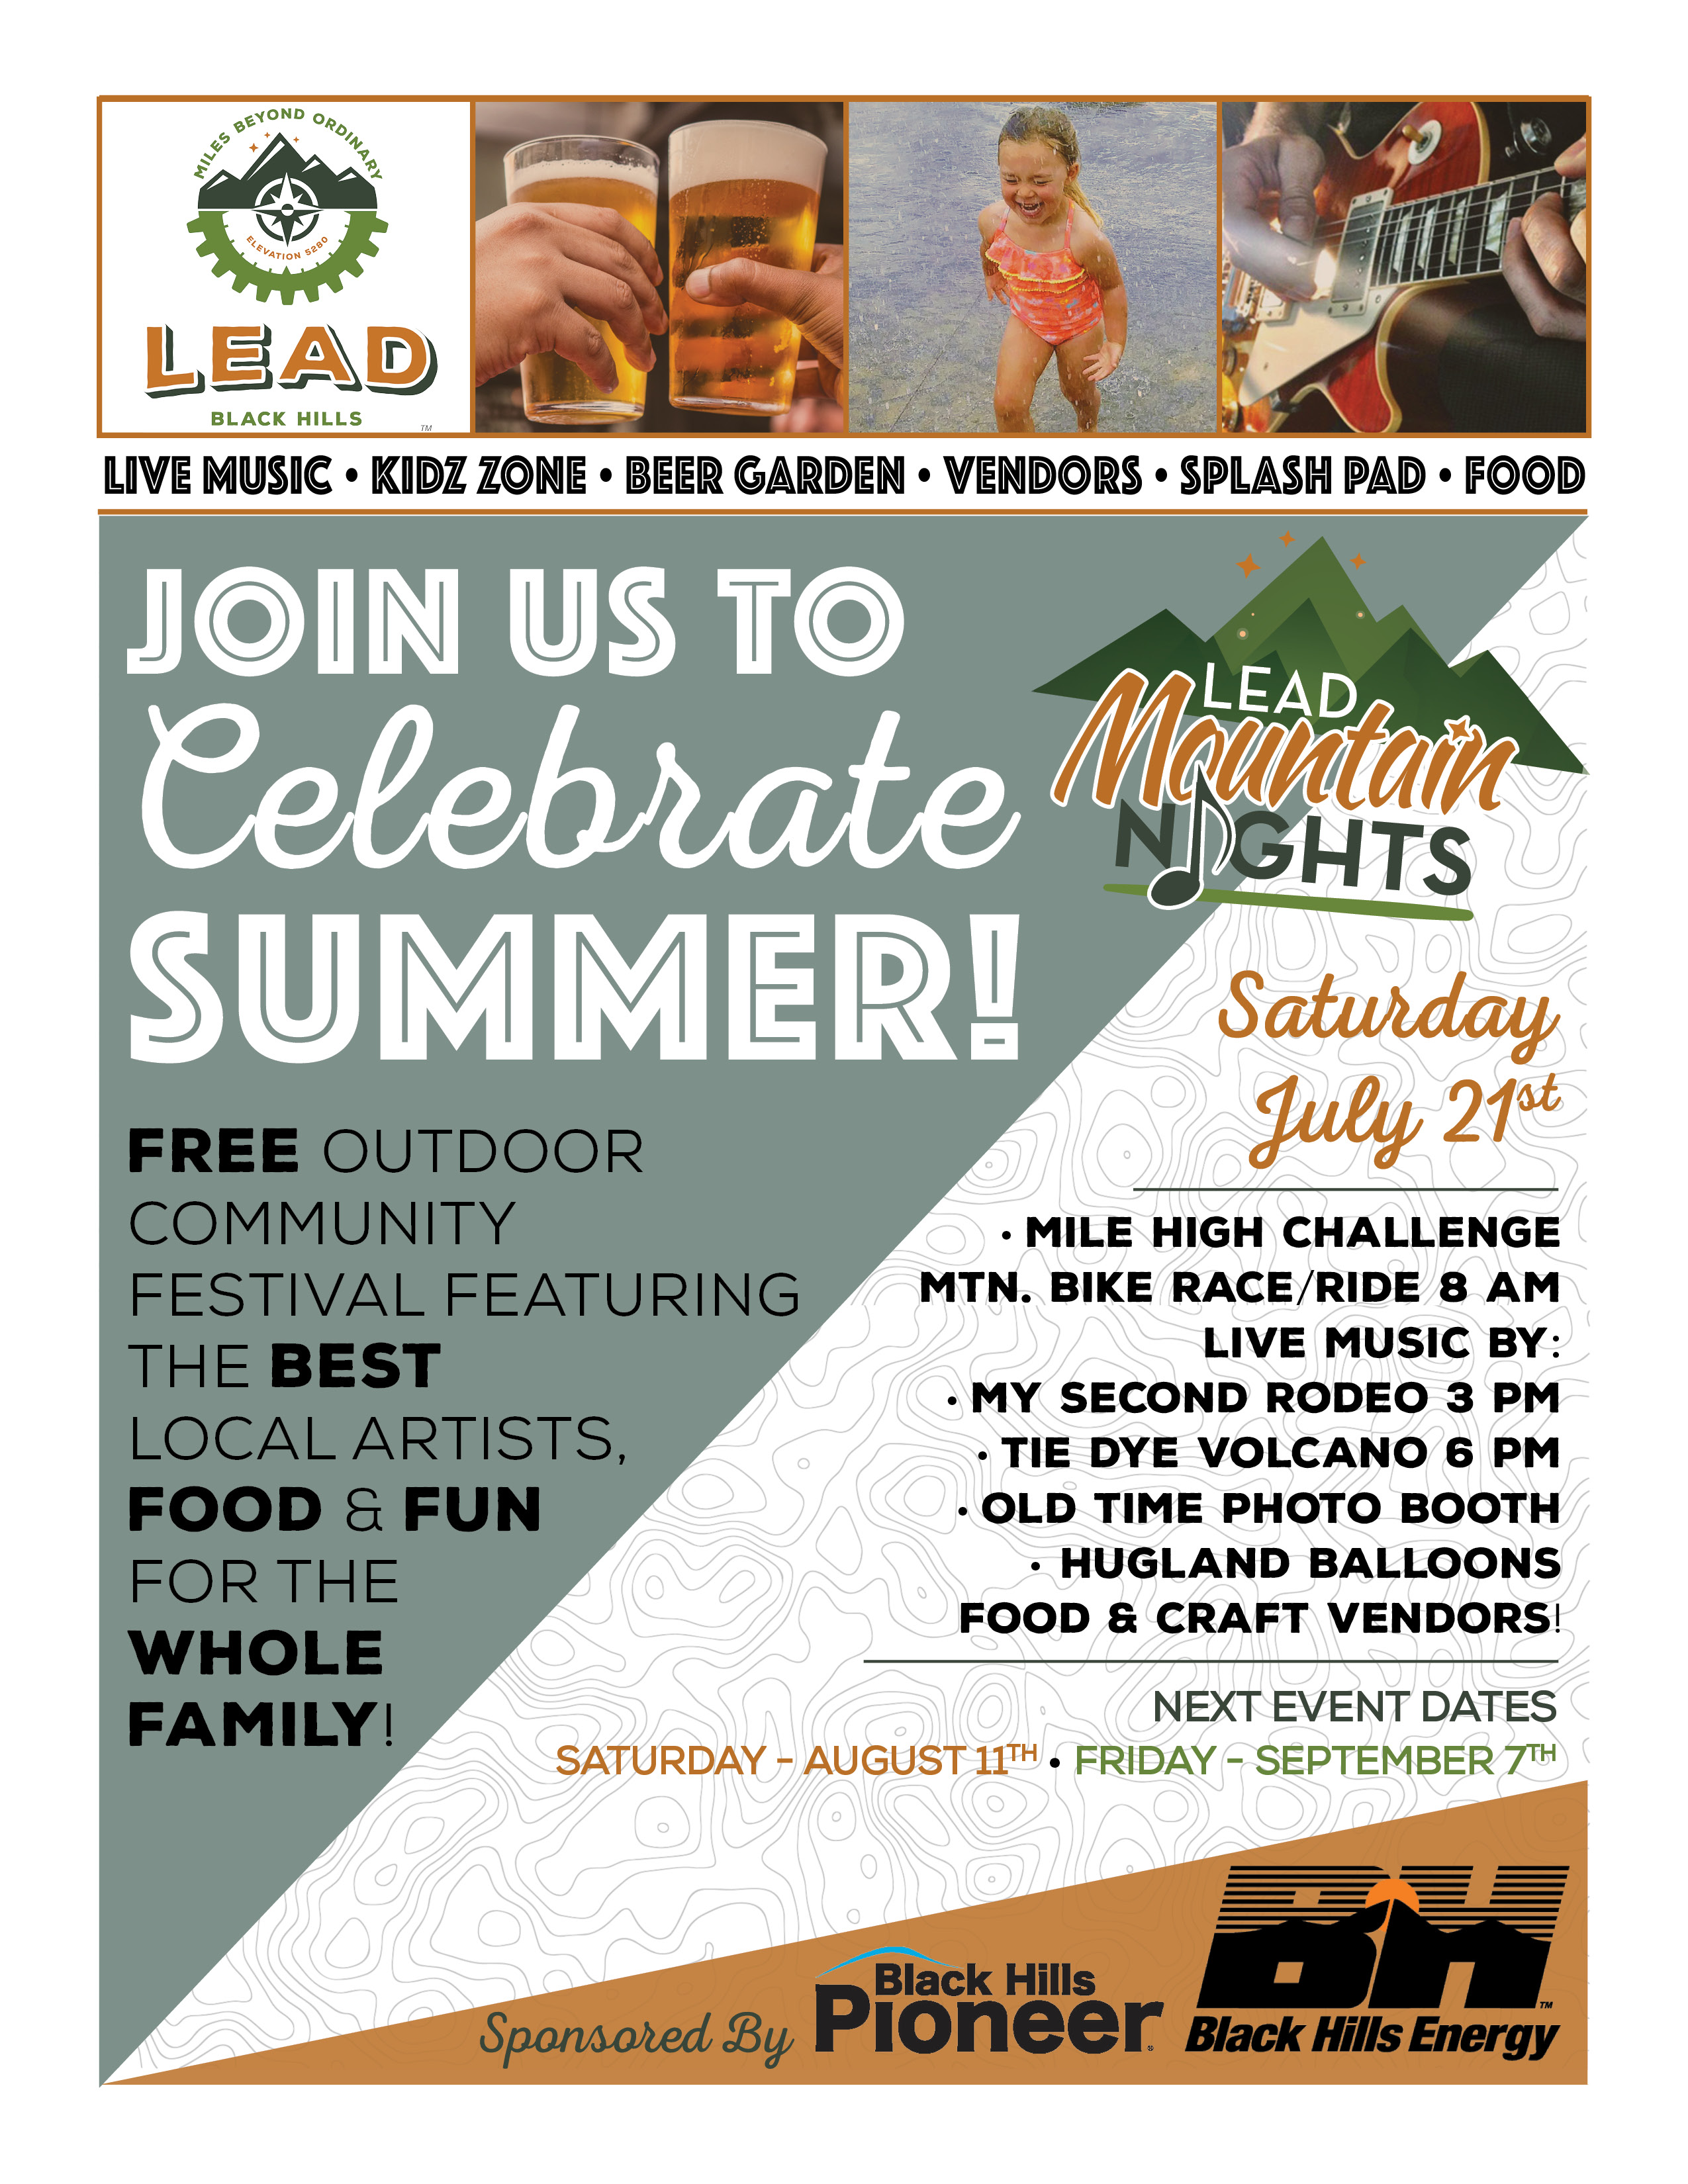 Lead Mountain Nights July 2018 – LEAD Area Chamber of Commerce